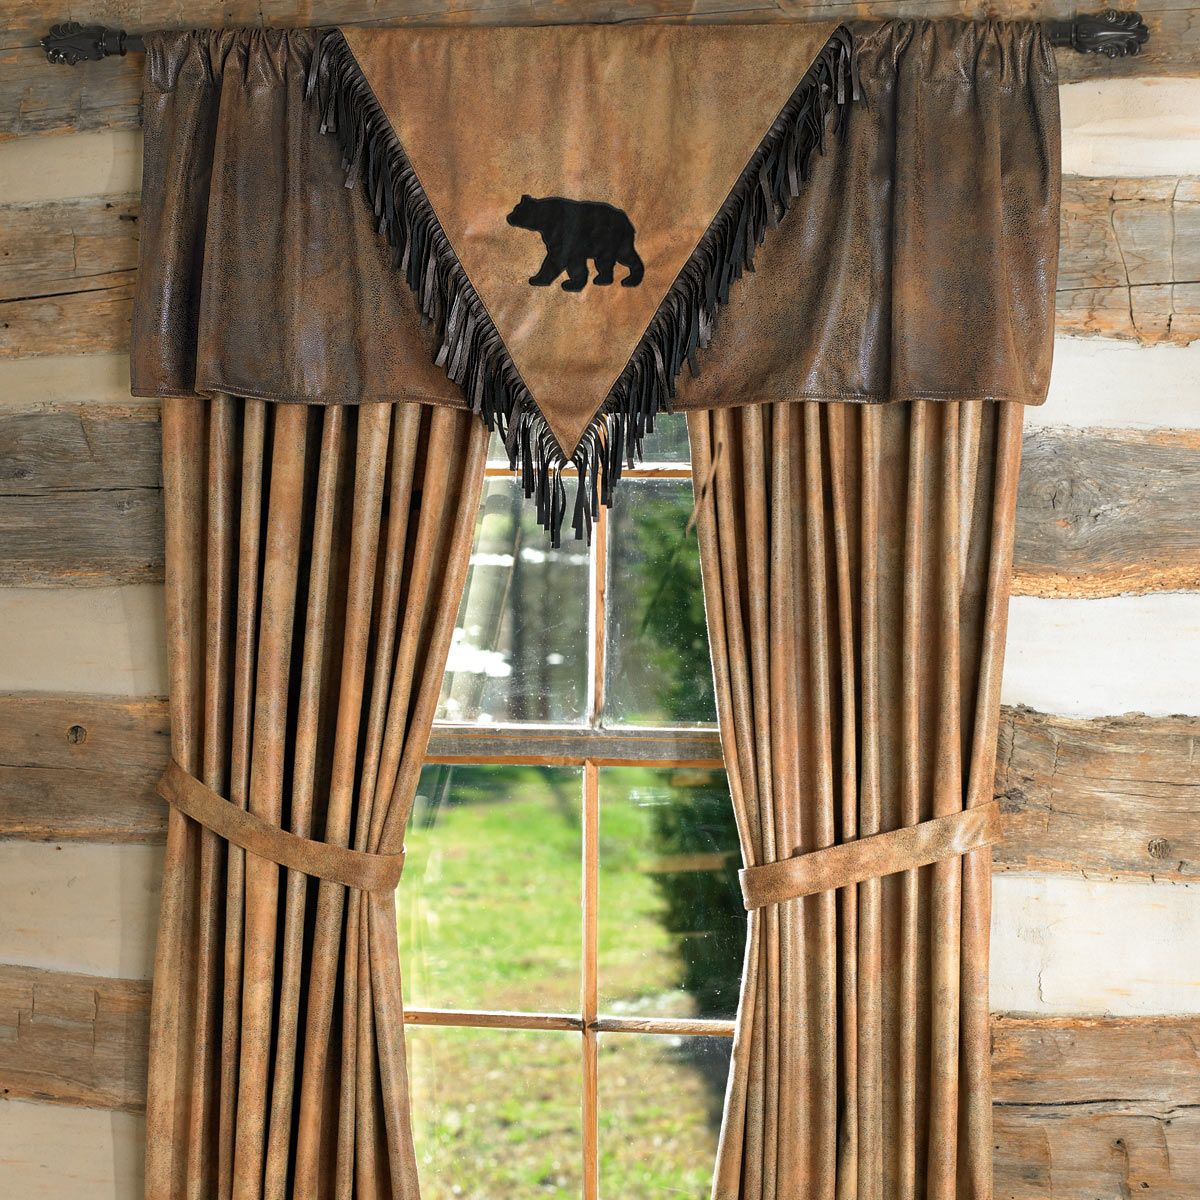 Black Bear V Valance Z Bed Pinterest Posts Rustic Bathrooms And Bathroom Windows